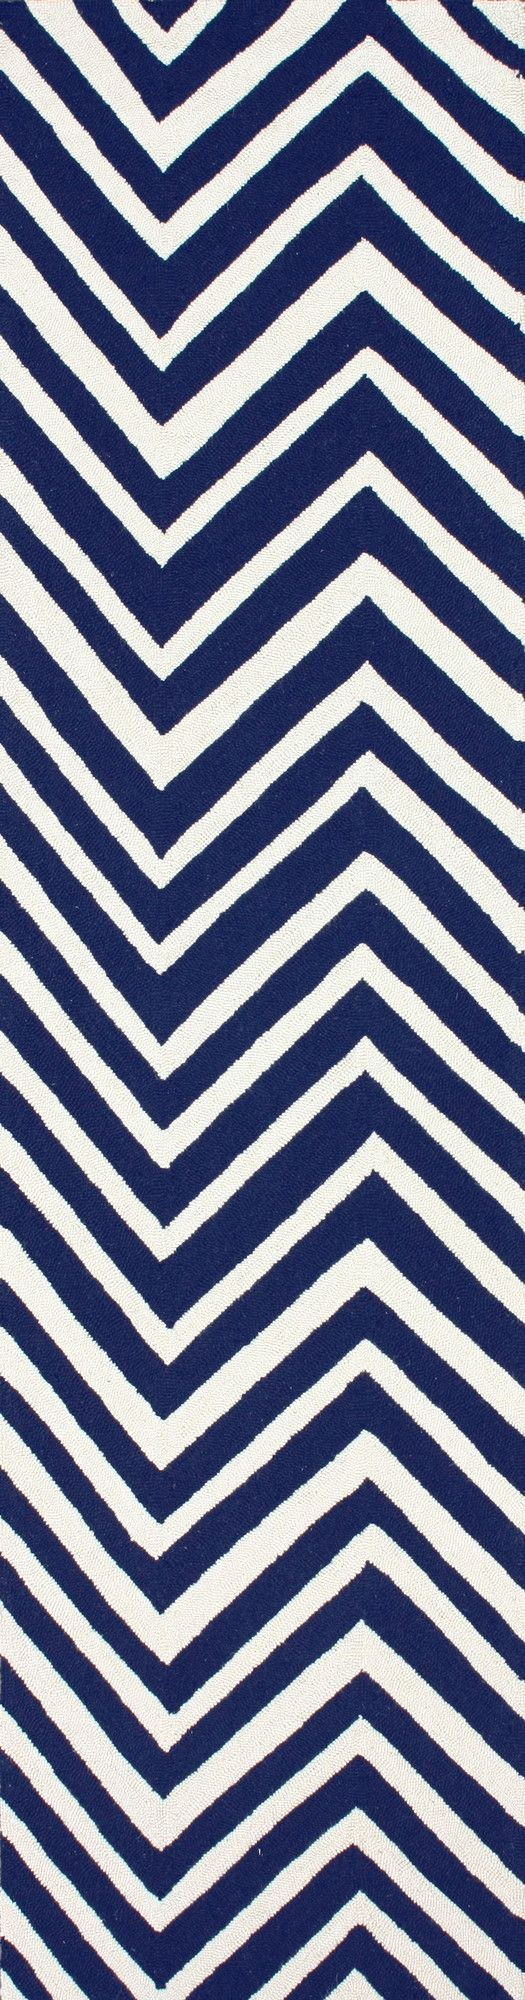 Chelsea Navy Blue/White Chevron Area Rug